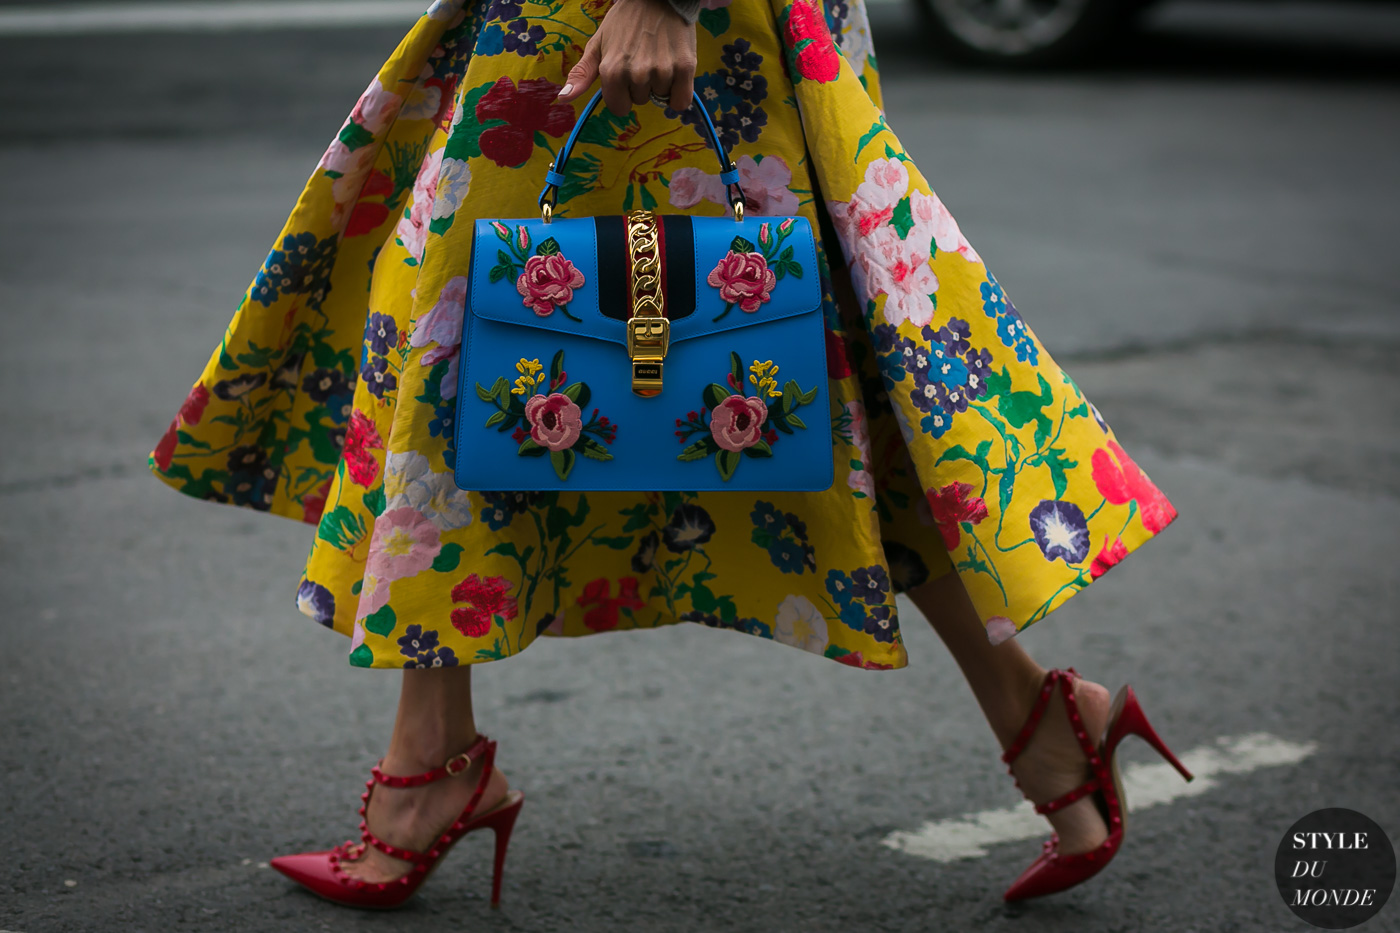 Gucci bag Valentino shoes by STYLEDUMONDE Street Style Fashion Photography